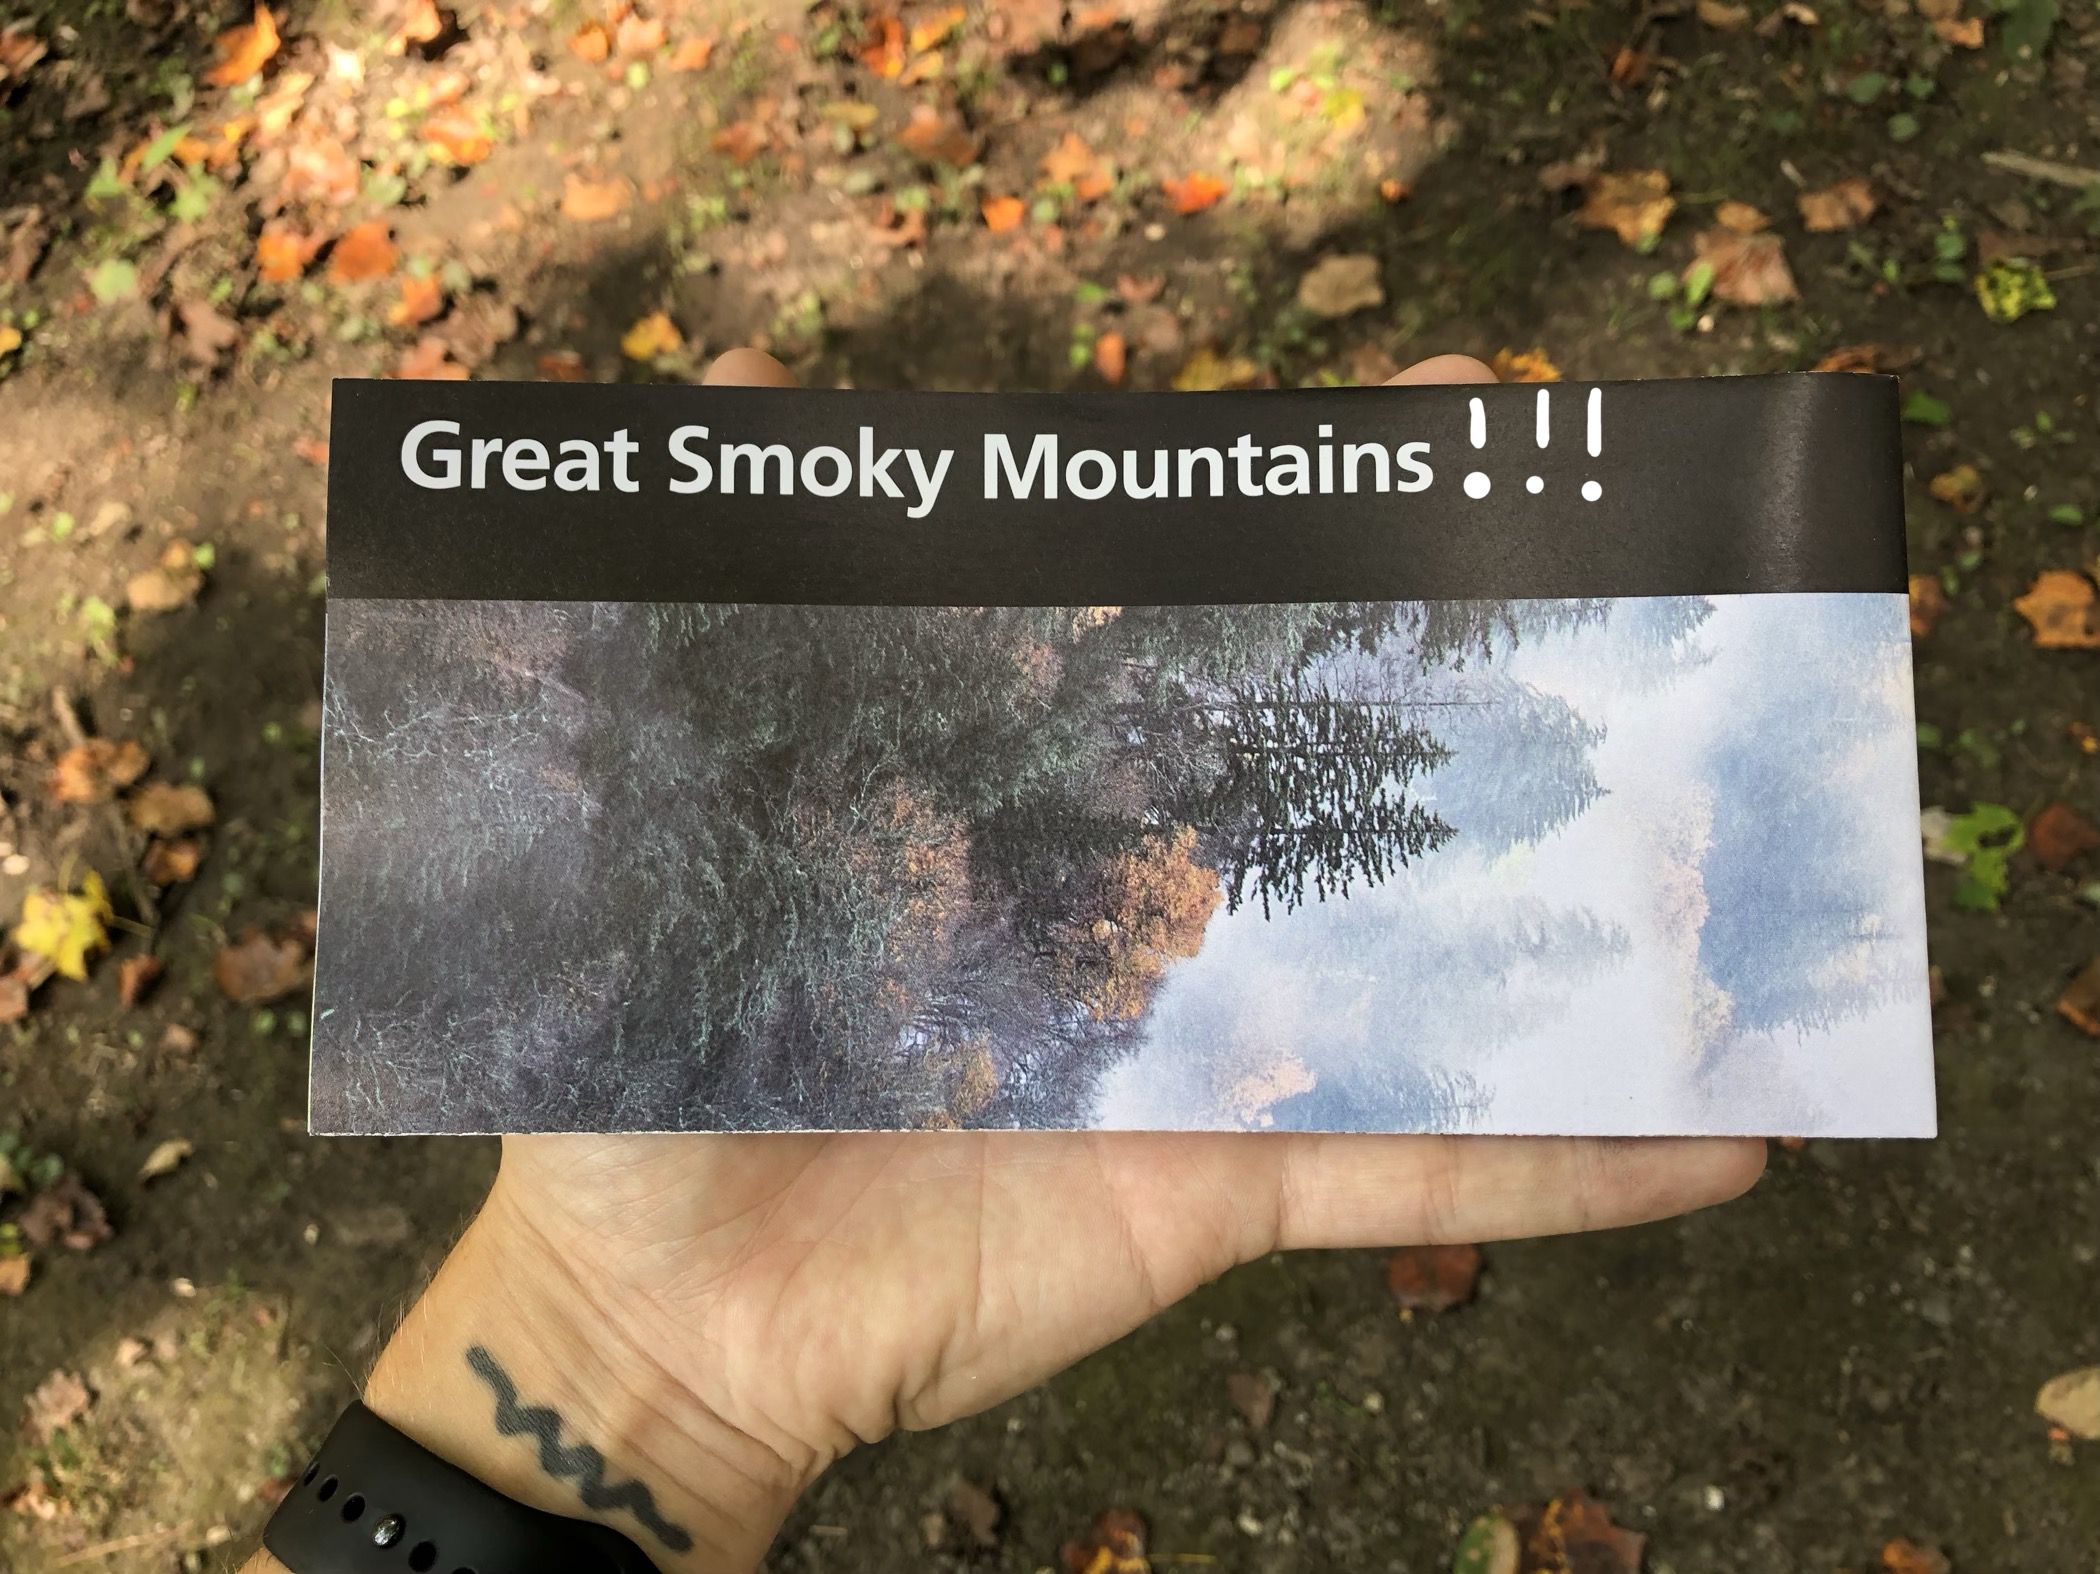 a brochure for Great Smoky Mountains National Park